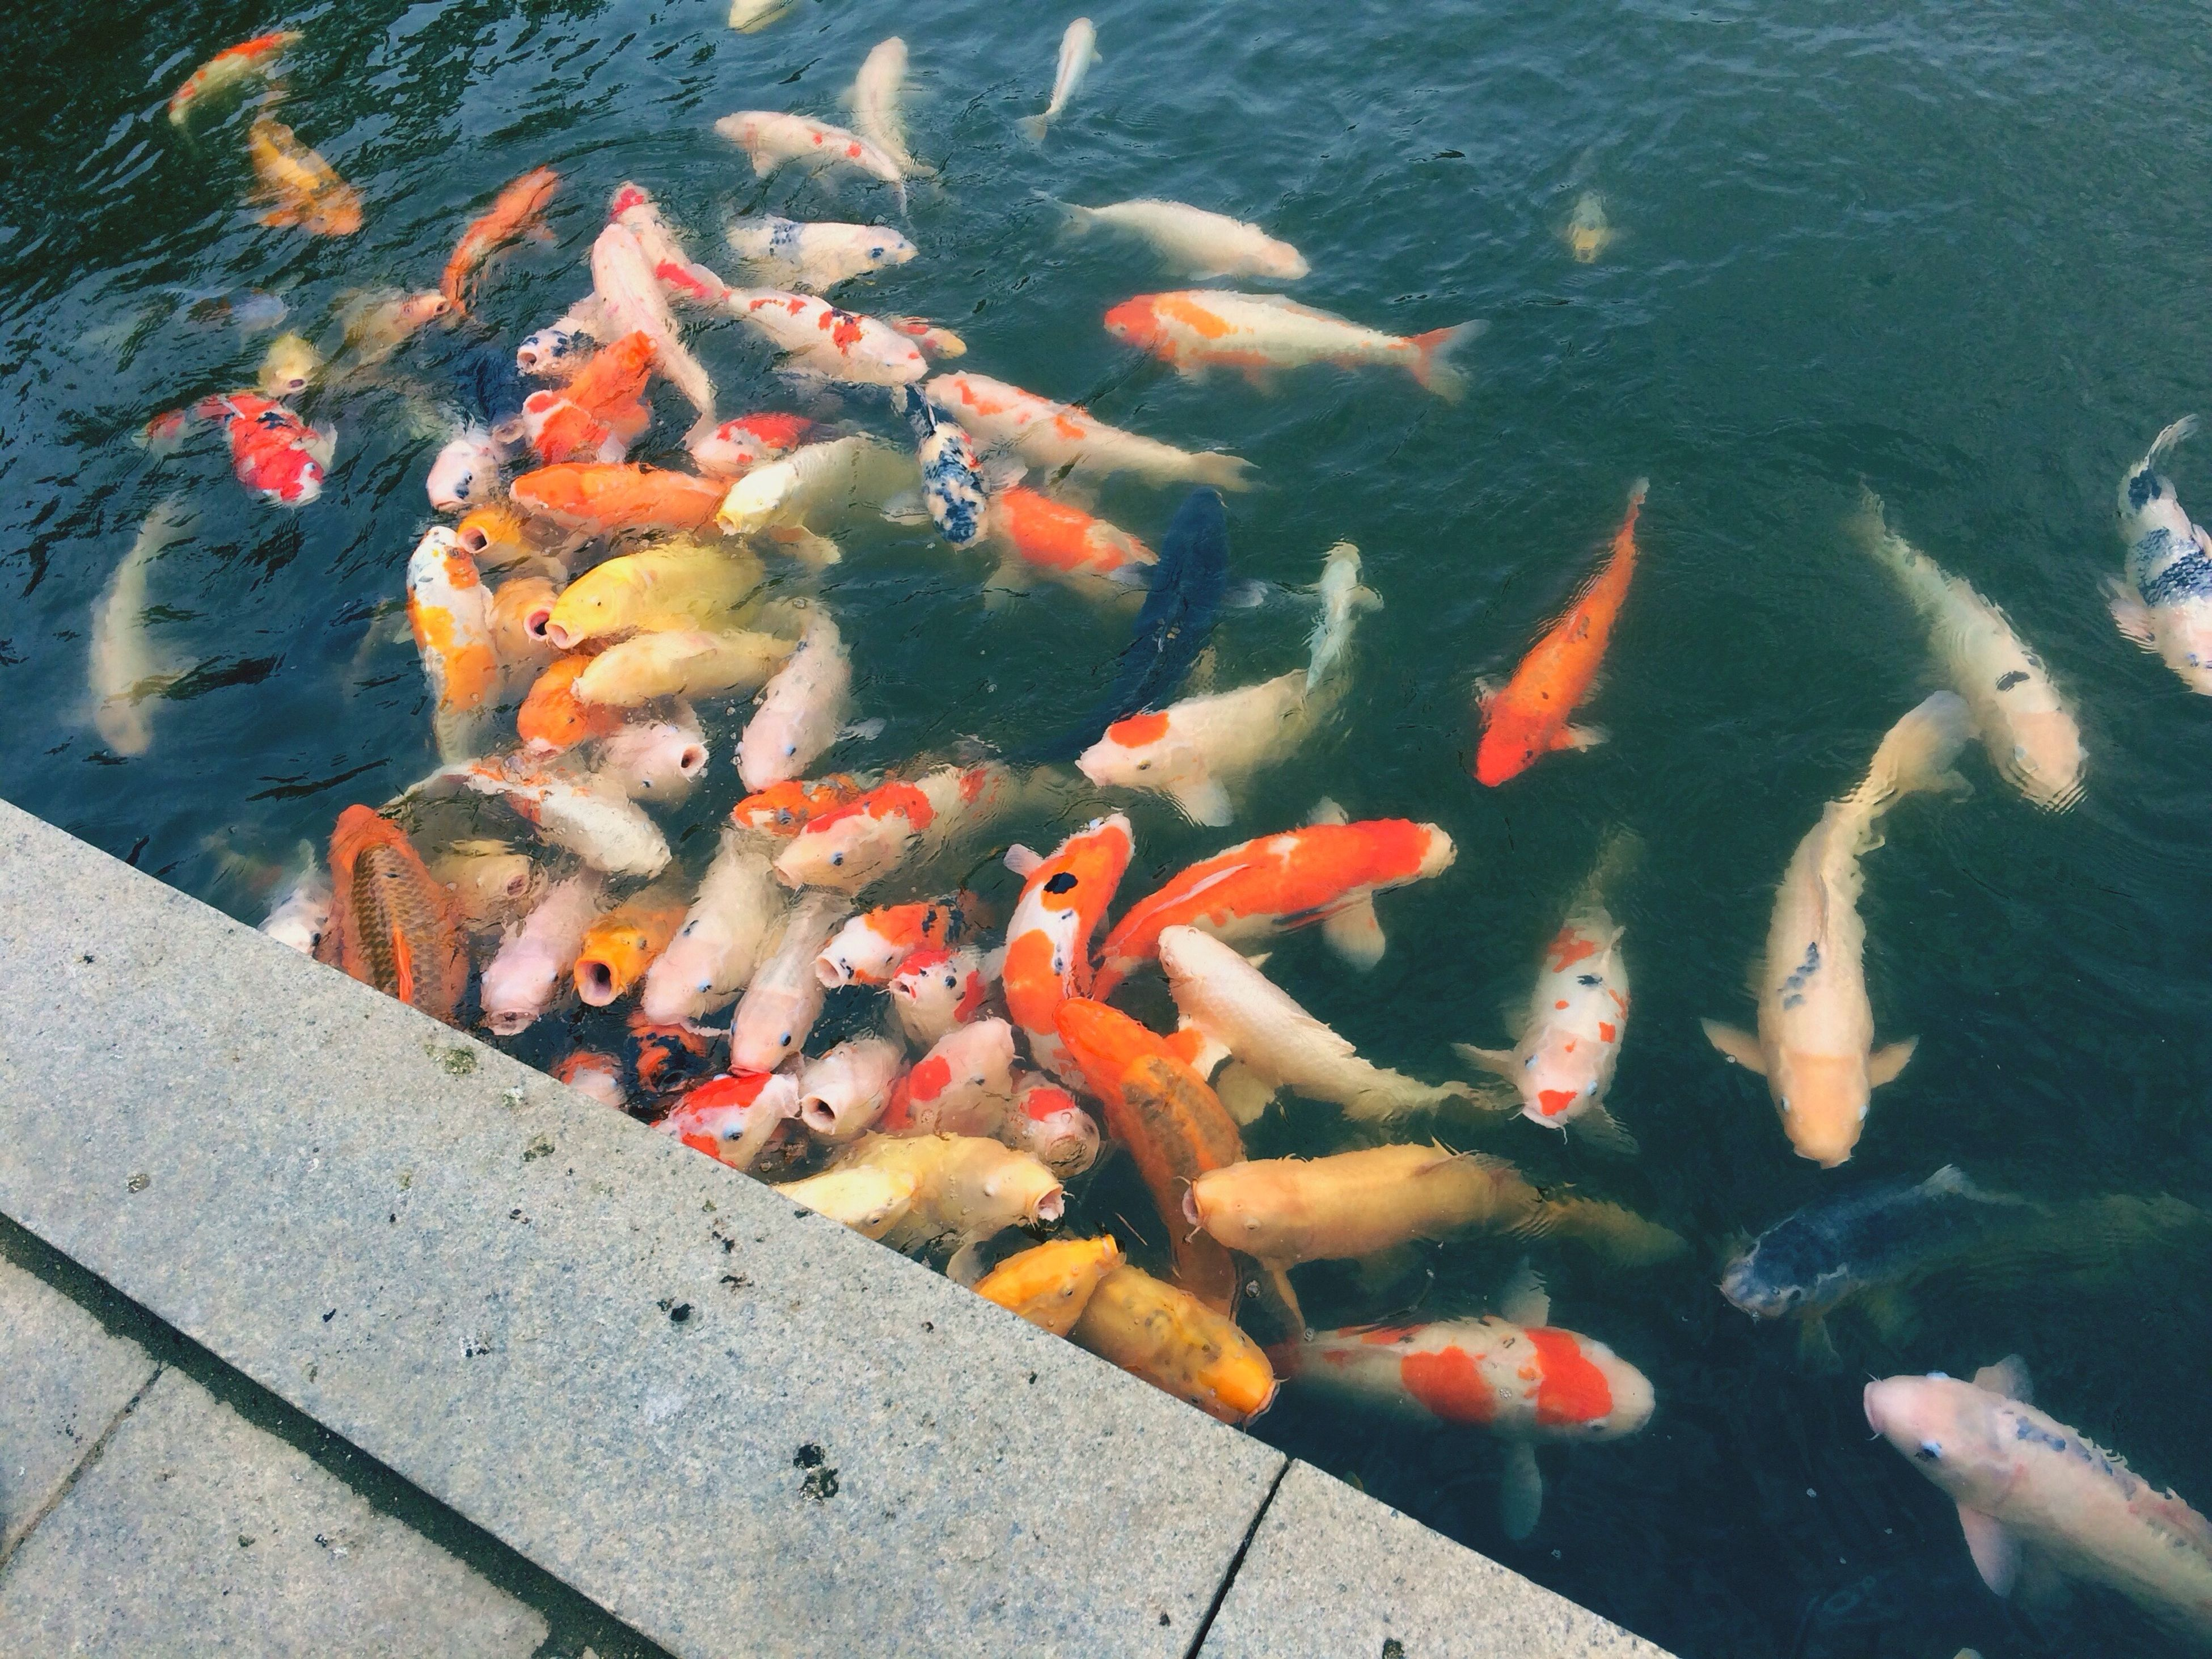 fish, large group of animals, animal themes, water, swimming, school of fish, carp, koi carp, multi colored, sea life, animals in the wild, group of animals, day, nature, close-up, no people, outdoors